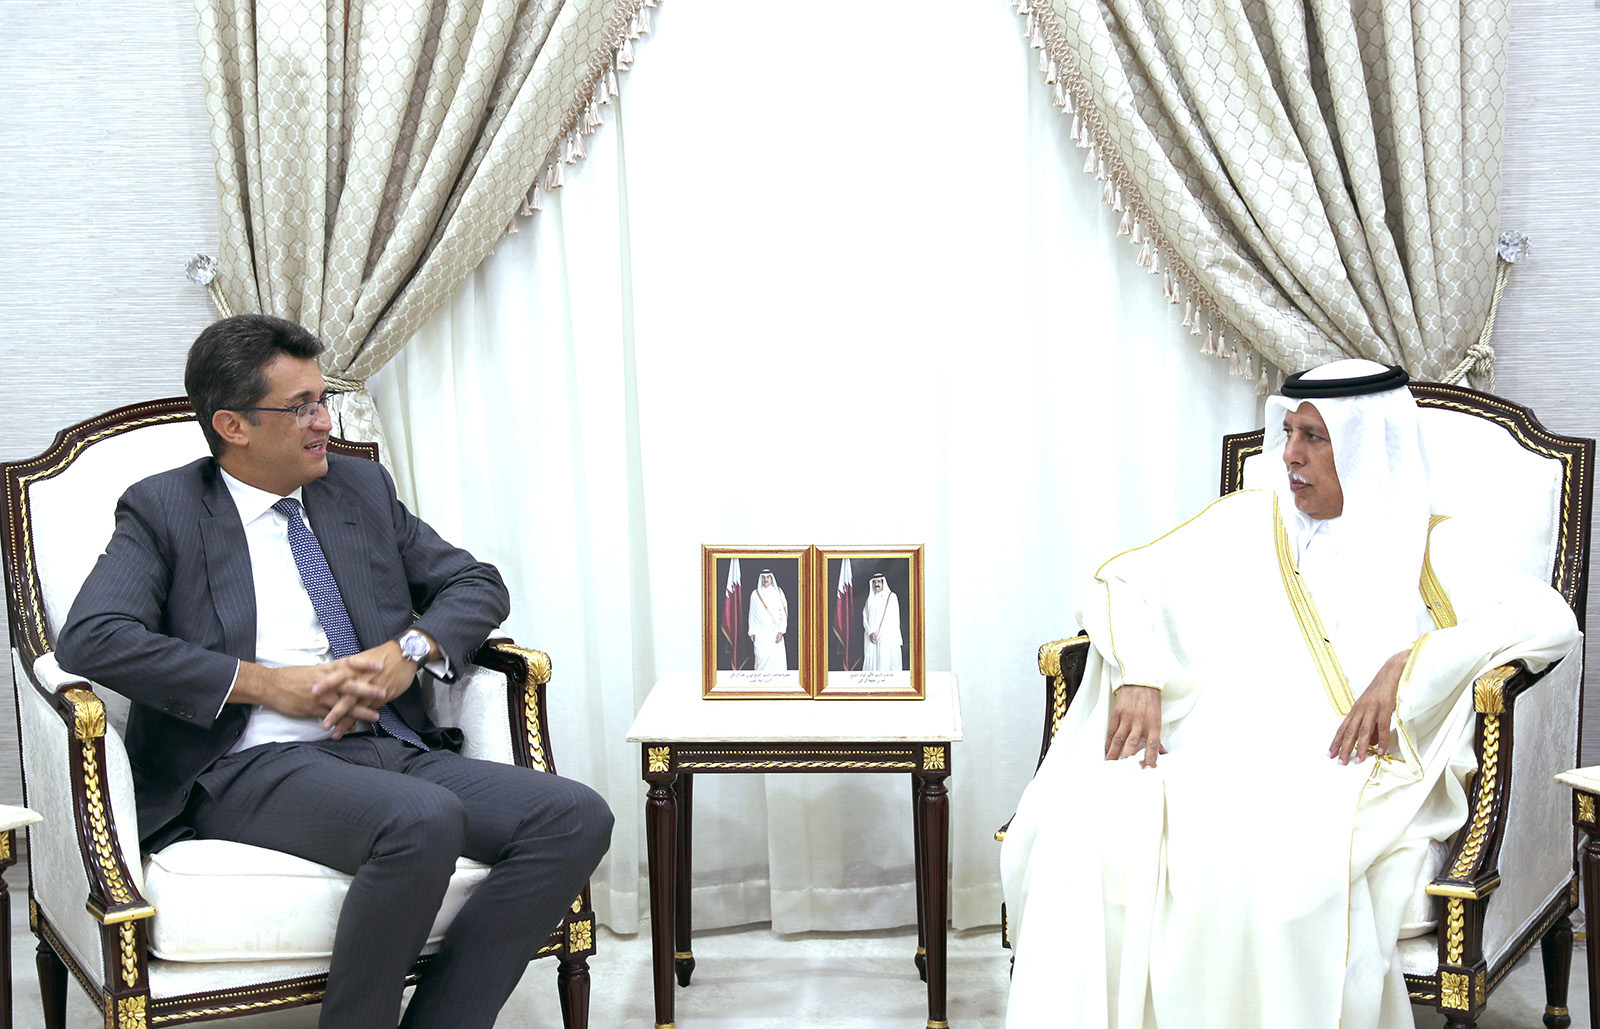 The Speaker of the Shura Council meets with the President of the European Union Delegation to Qatar